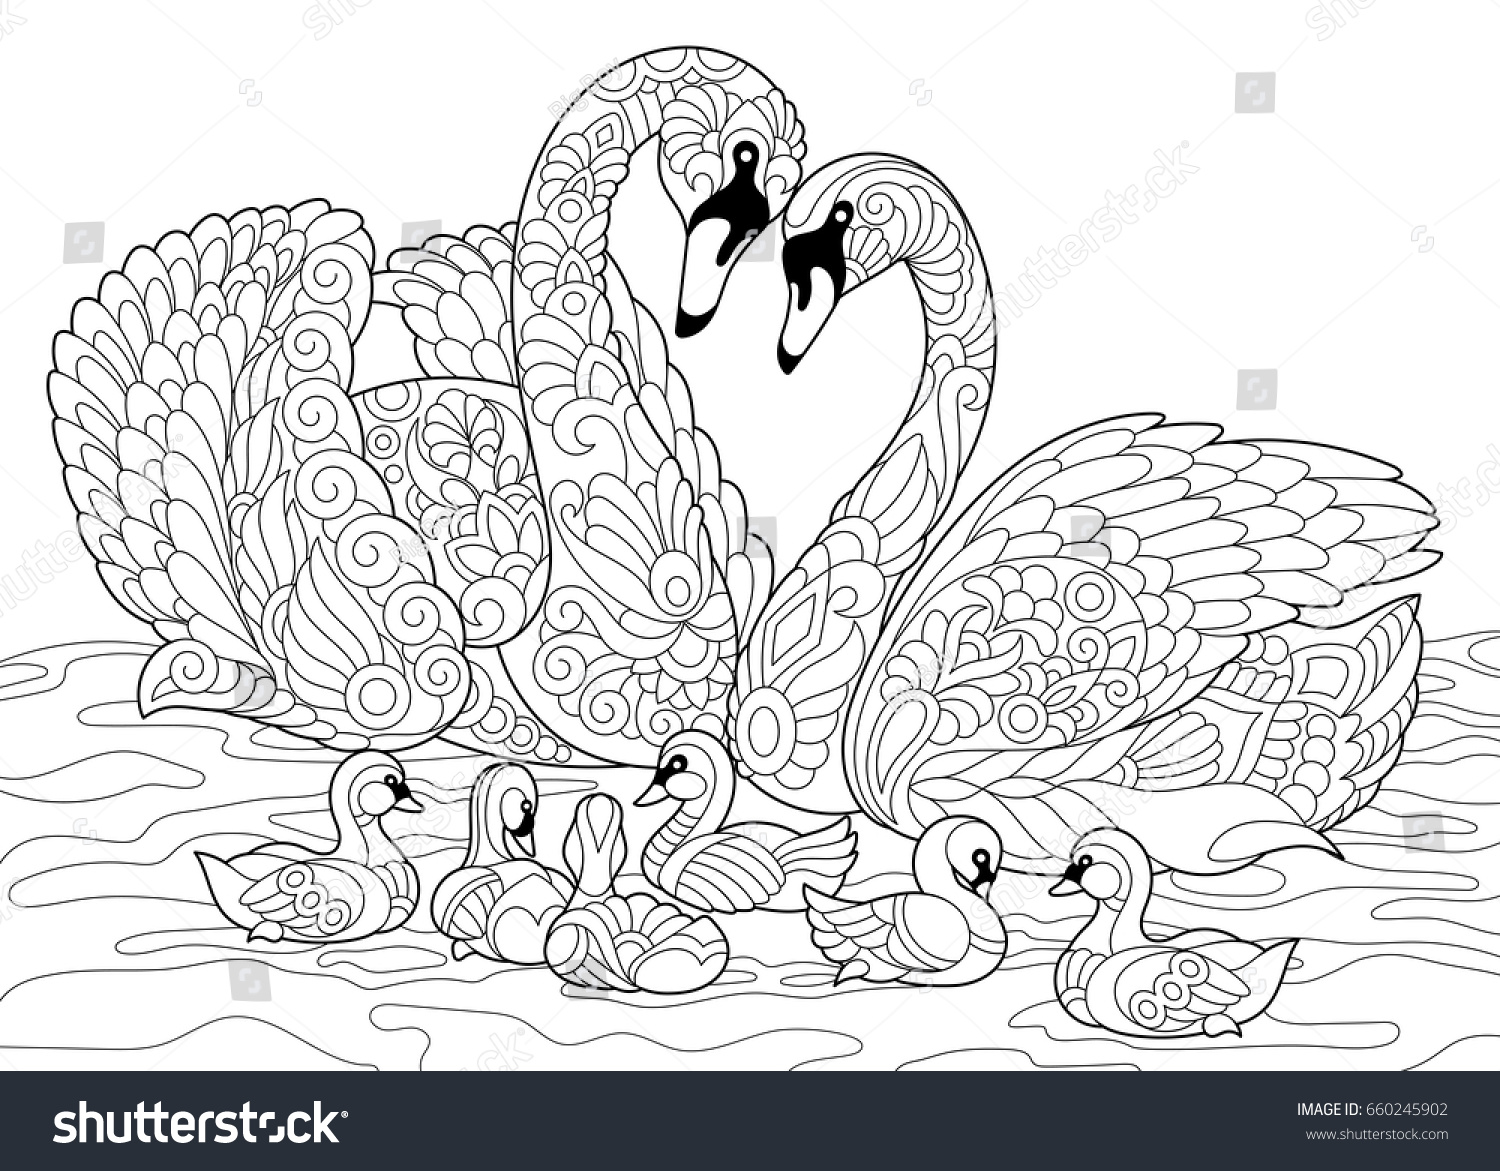 Coloring Book Page Of Swan Birds Family Freehand Sketch Drawing For Adult Antistress Colouring With